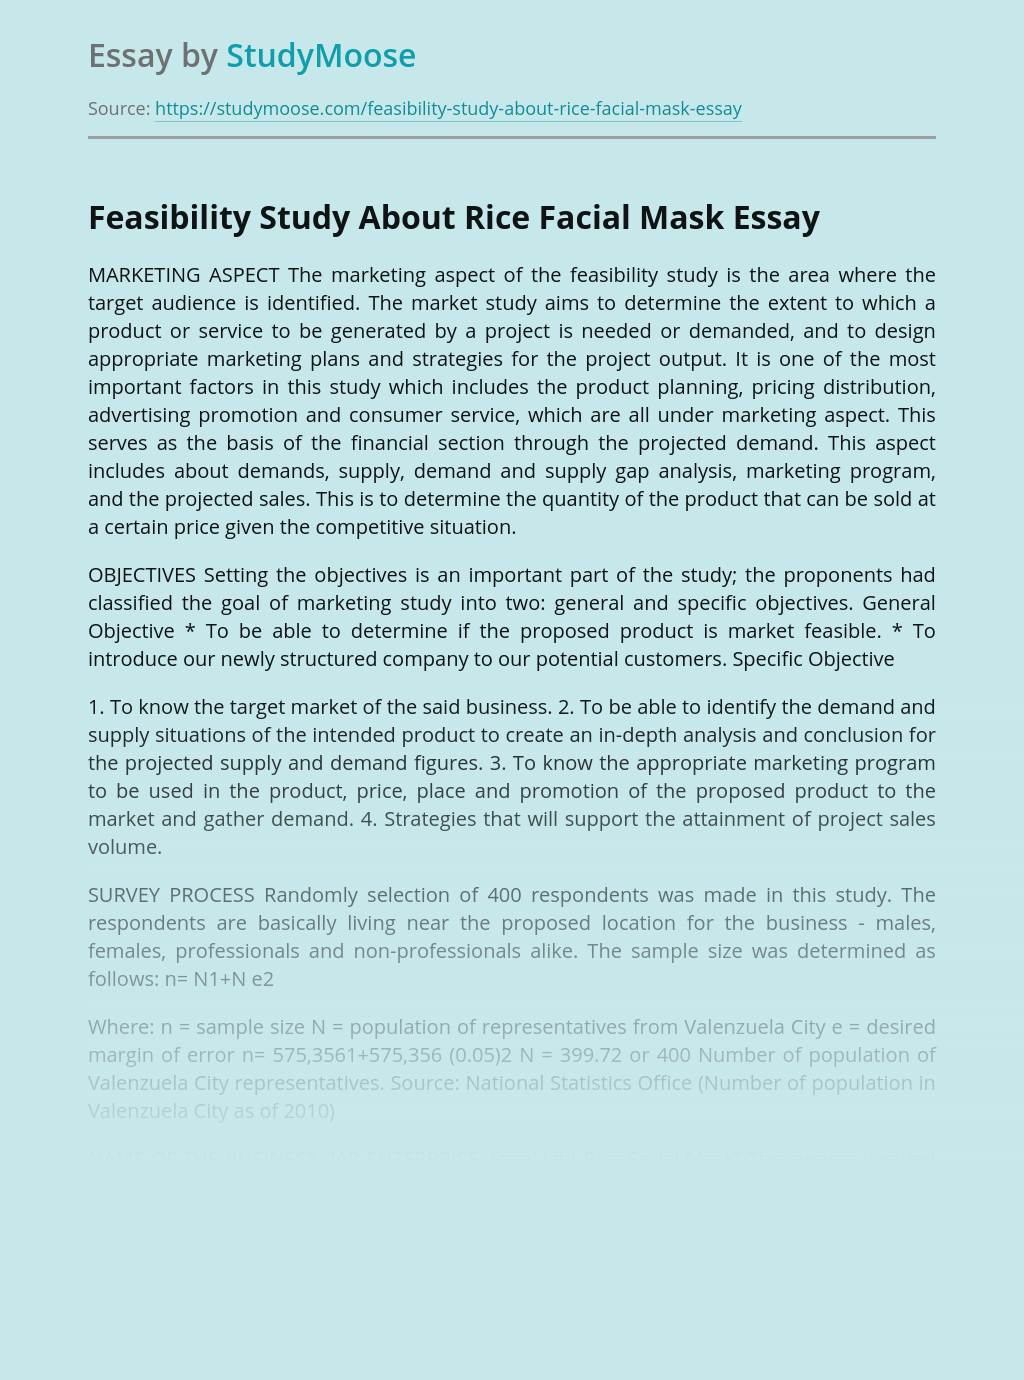 Feasibility Study About Rice Facial Mask